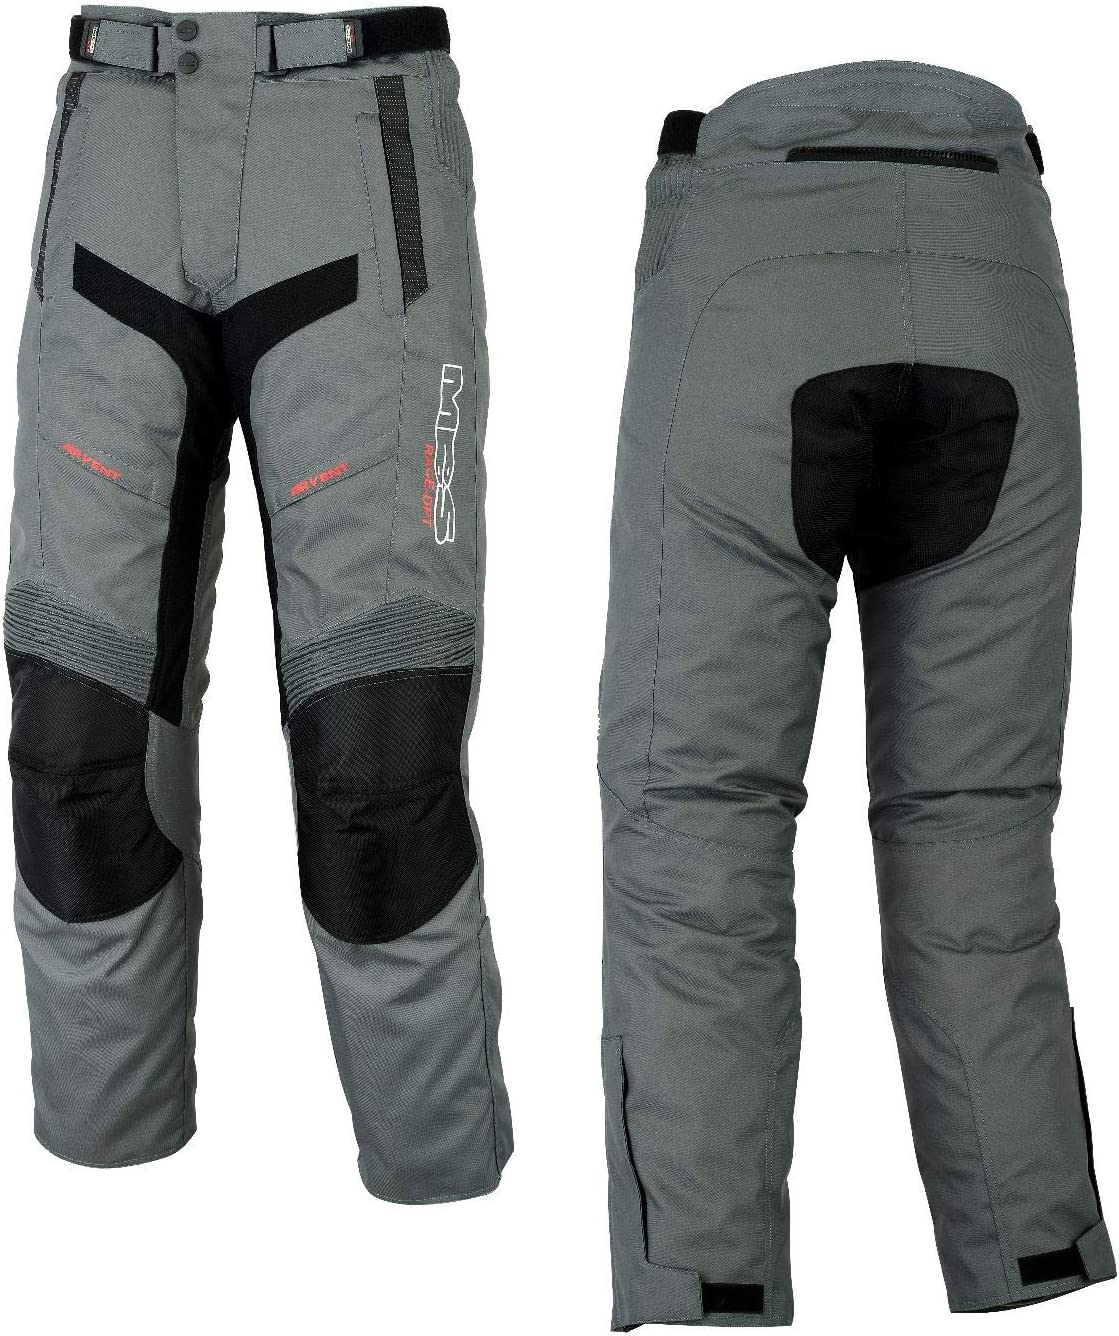 MBSmoto MP-51 Roader Motorcycle Motorbike Scooter Cruiser Touring Waterproof Windproof Textile Cordura Trouser M, Anthracite